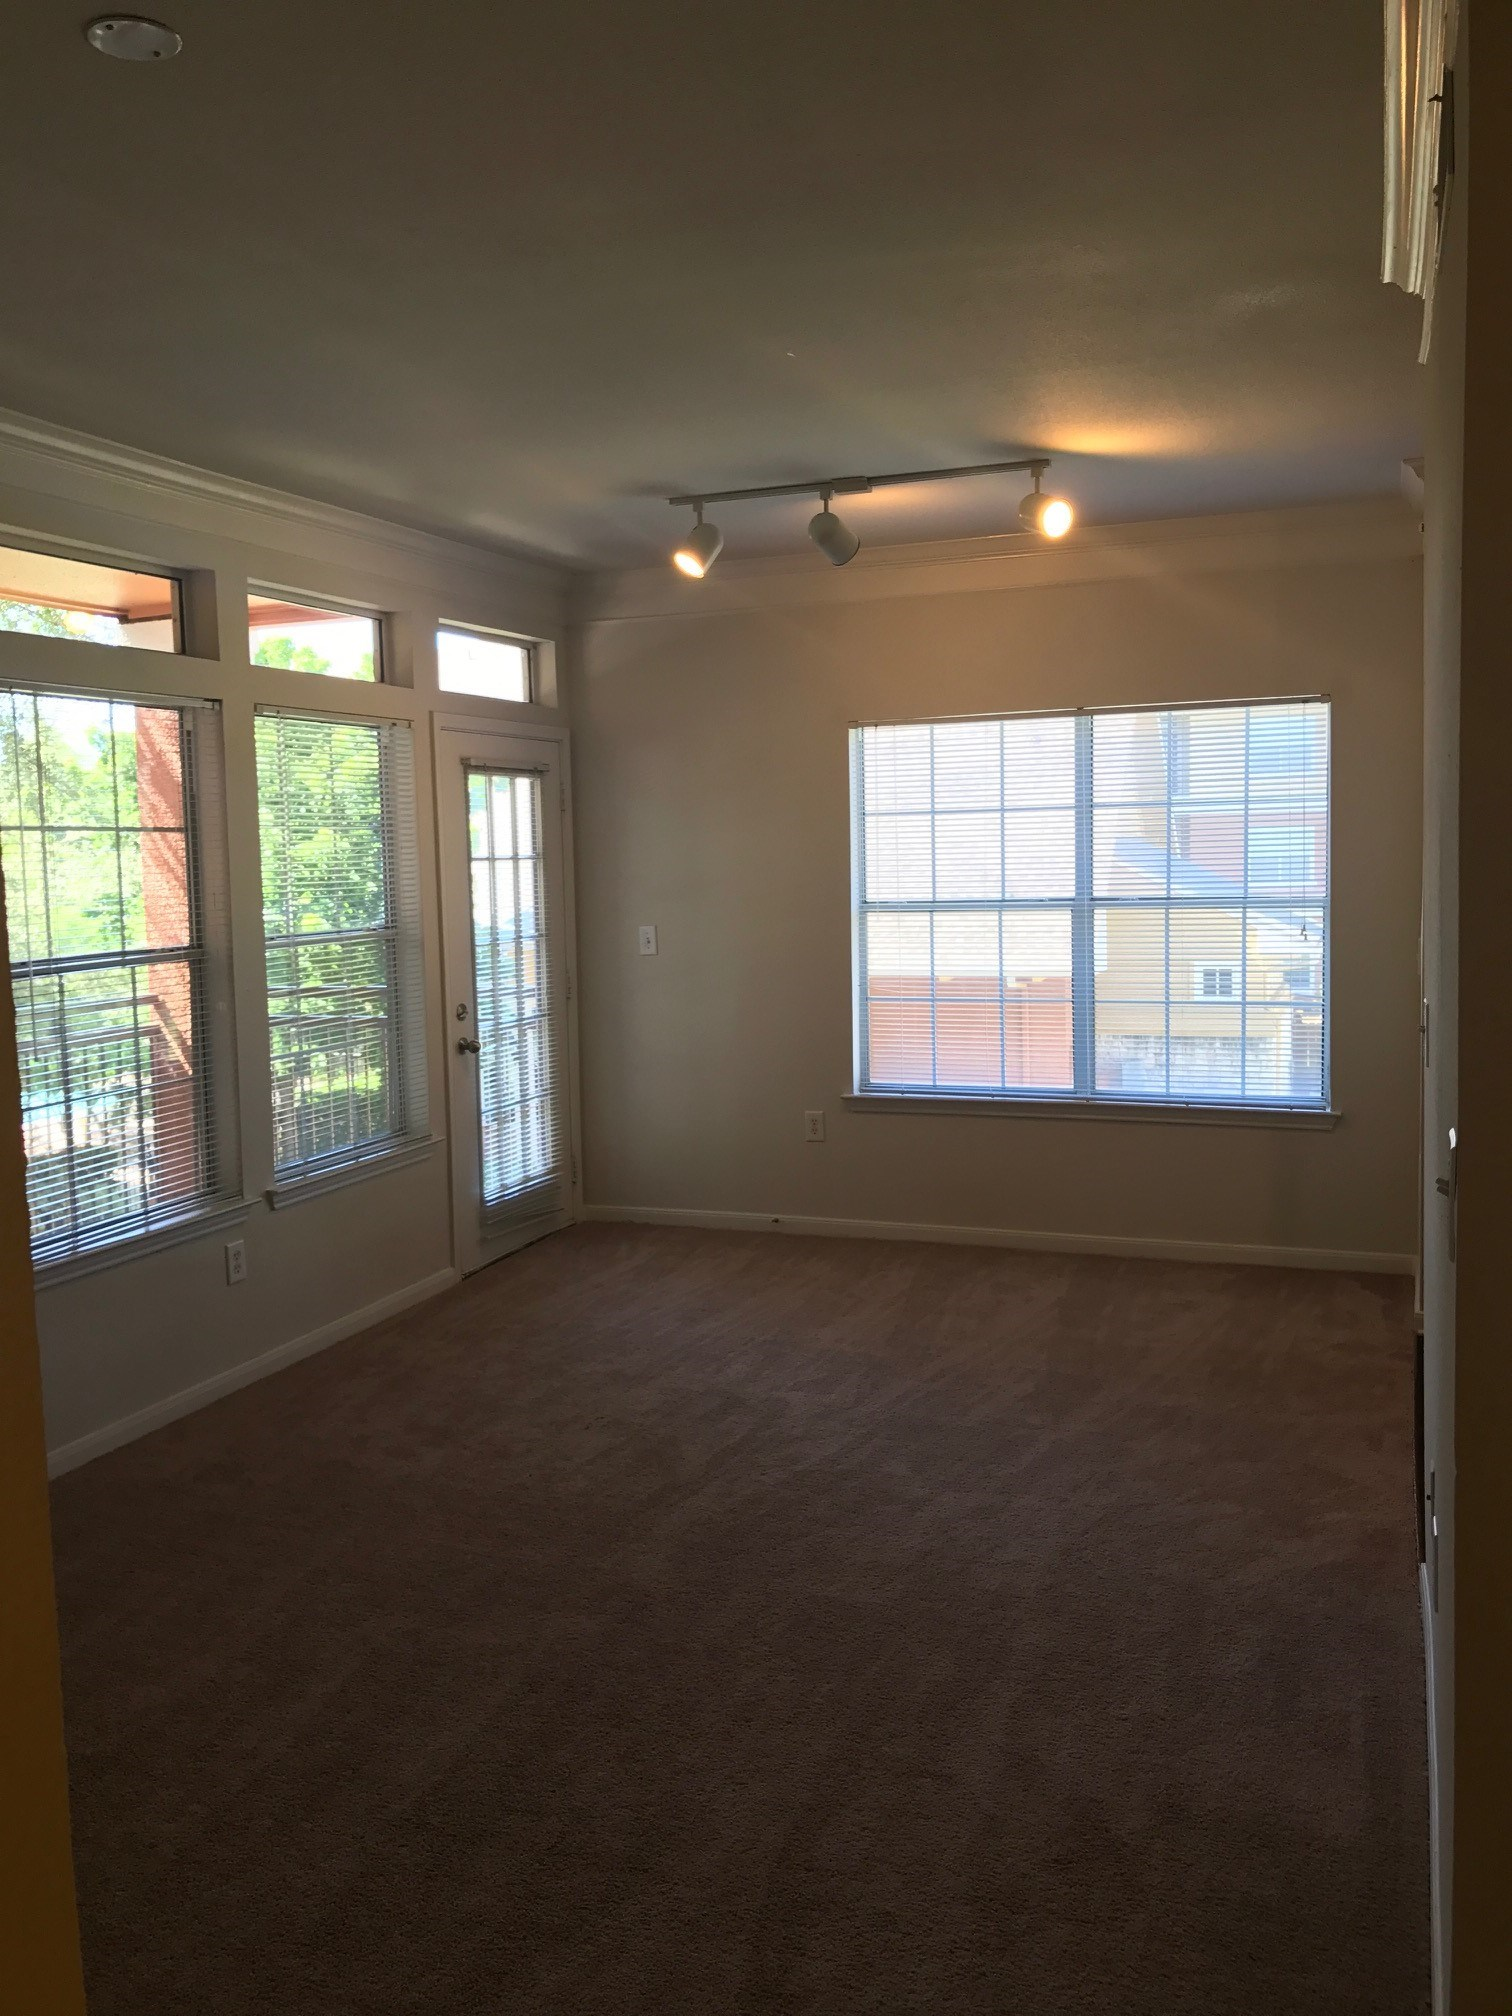 1 Bedroom Apartment to Rent in Austin TX Single Bedroom